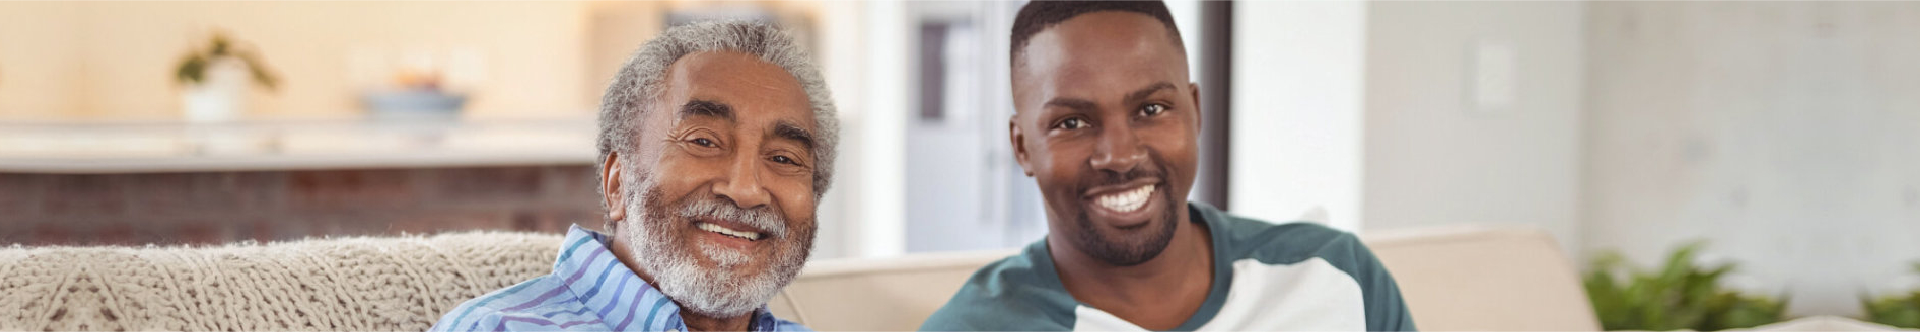 adult and senior man smiling